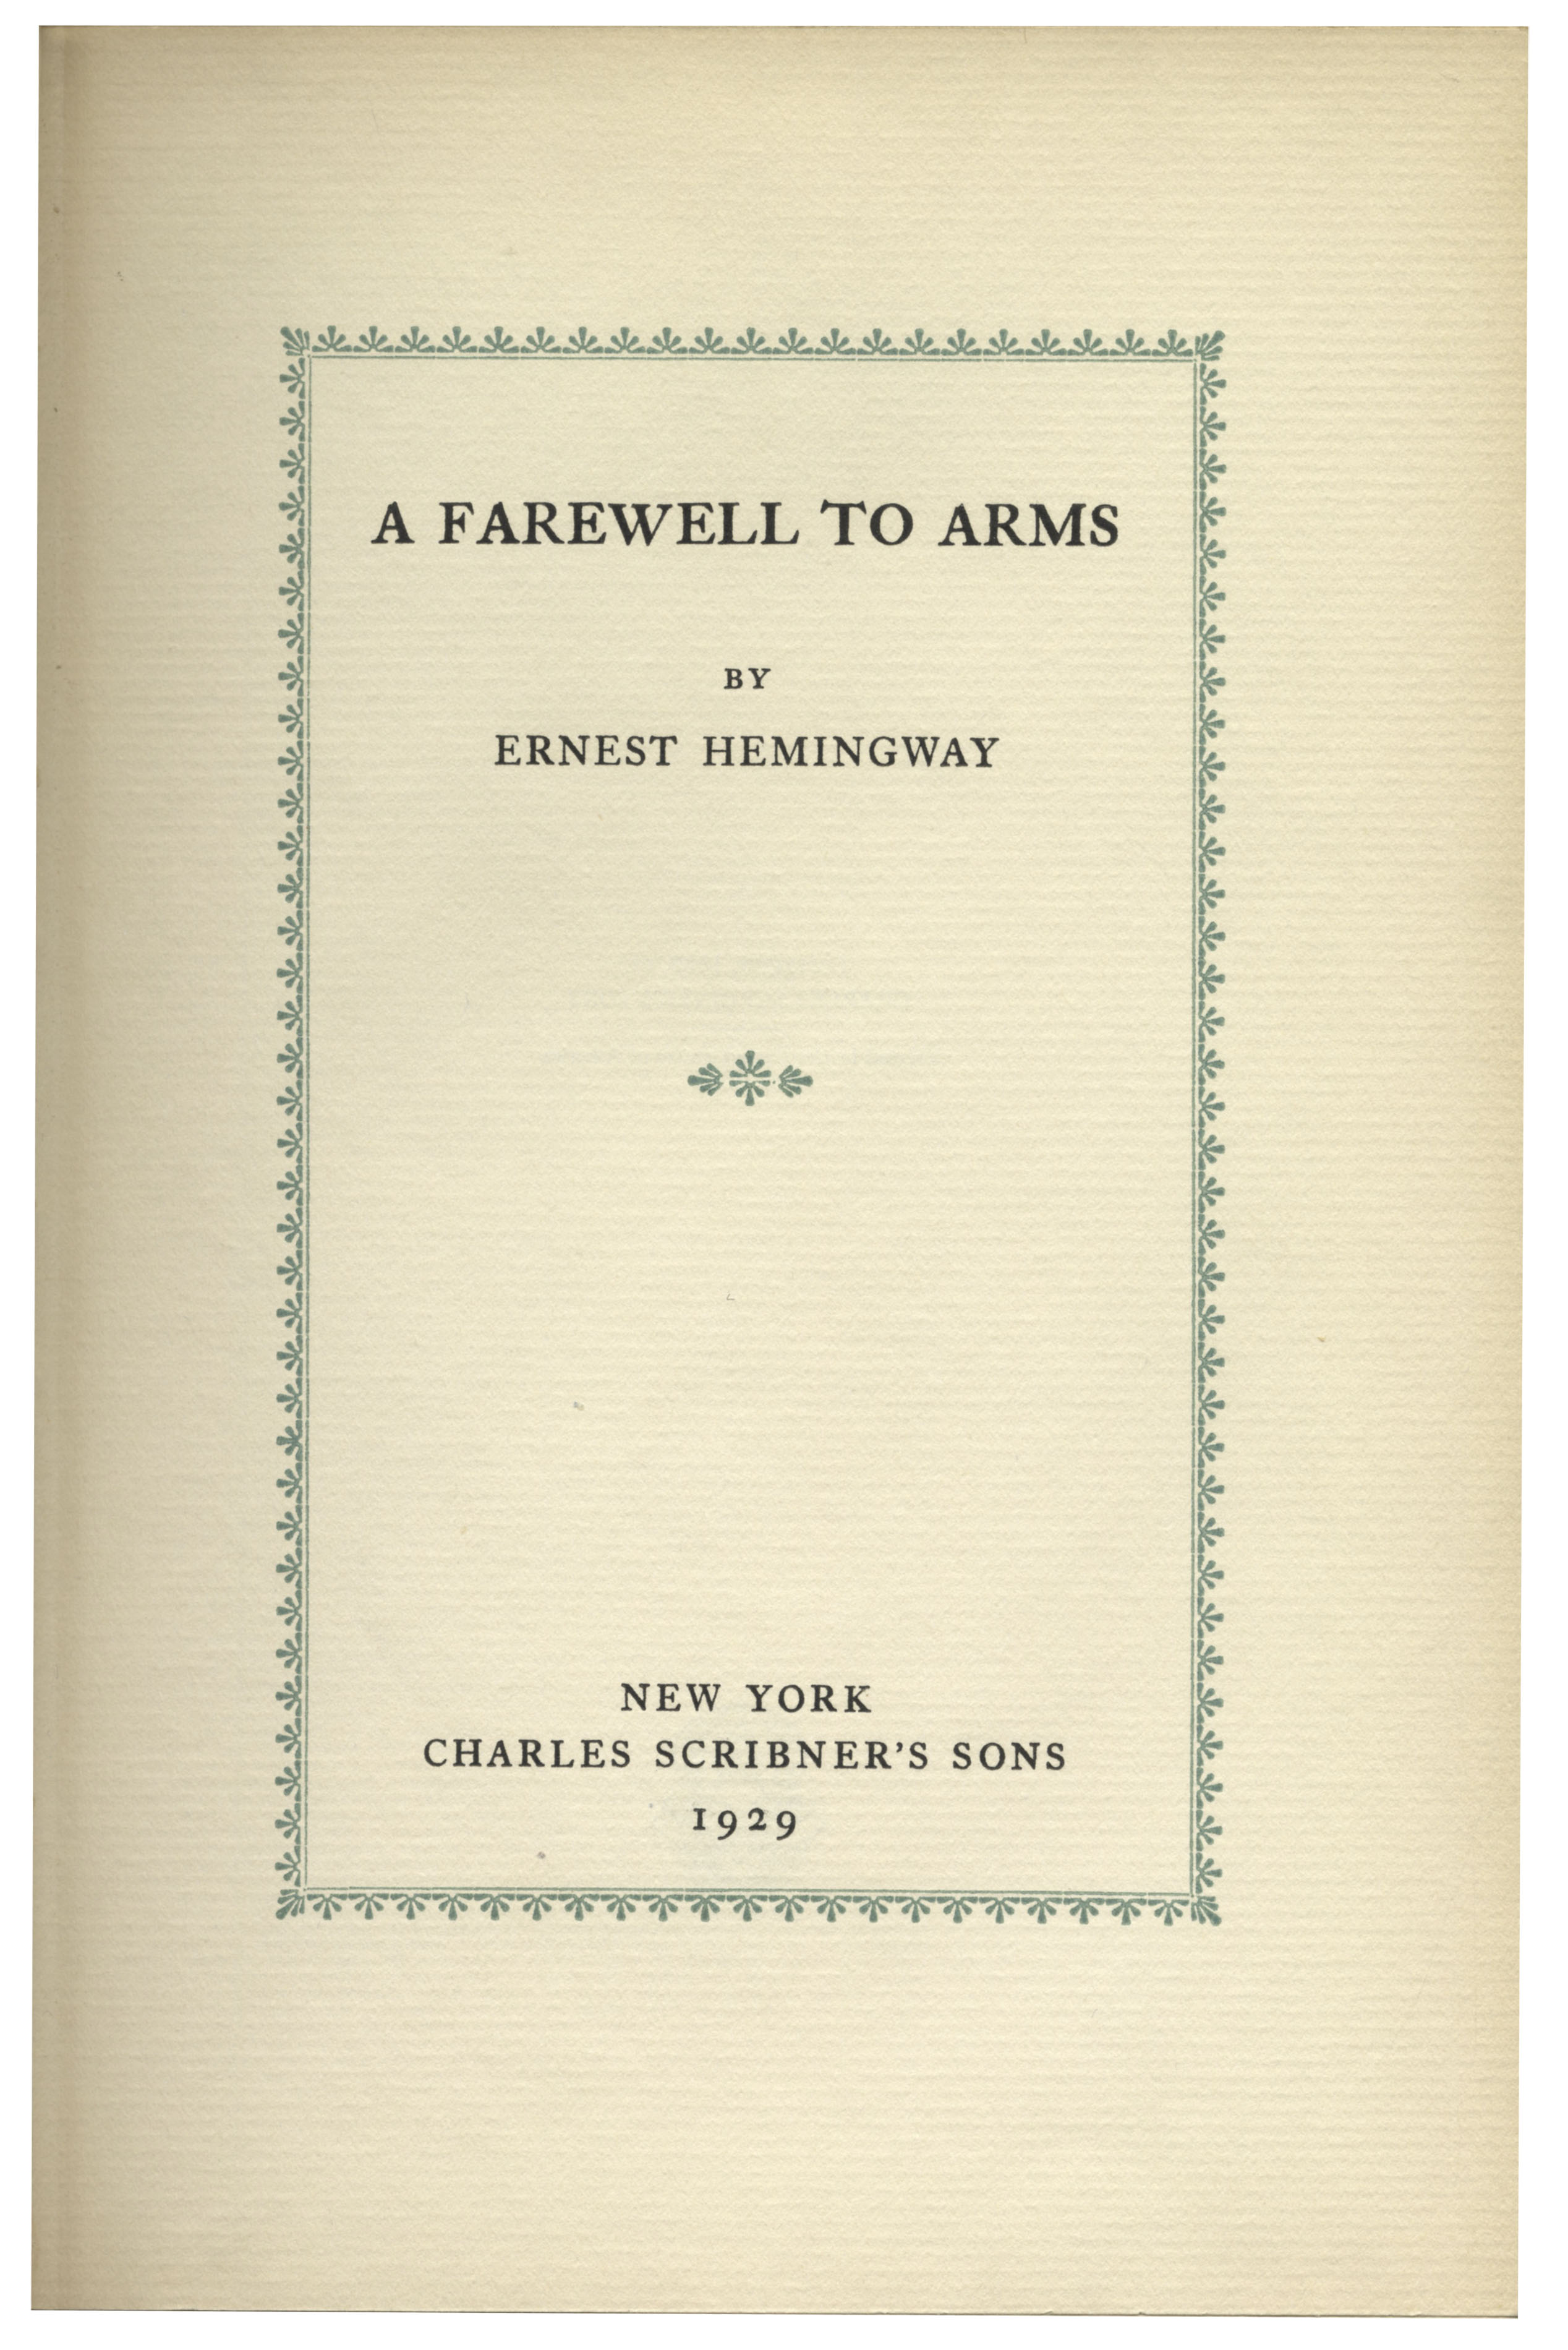 farewell arms ernest hemingway essay Essays & papers a farewell to arms: in search of in search of a sense of life ernest hemingway is one of the most famed american writers of our time - a farewell to arms: pseudoautobiography and personal metaphor ernest hemingway's a farewell to arms ed harold bloom.